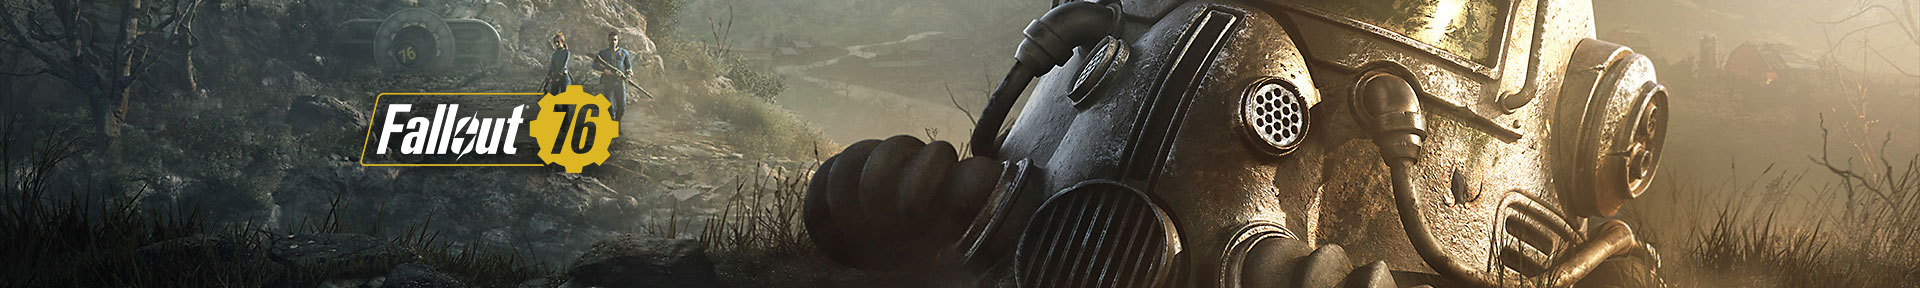 Cheap Fallout 76 Items Store, Buy FO76 Weapons, Armors